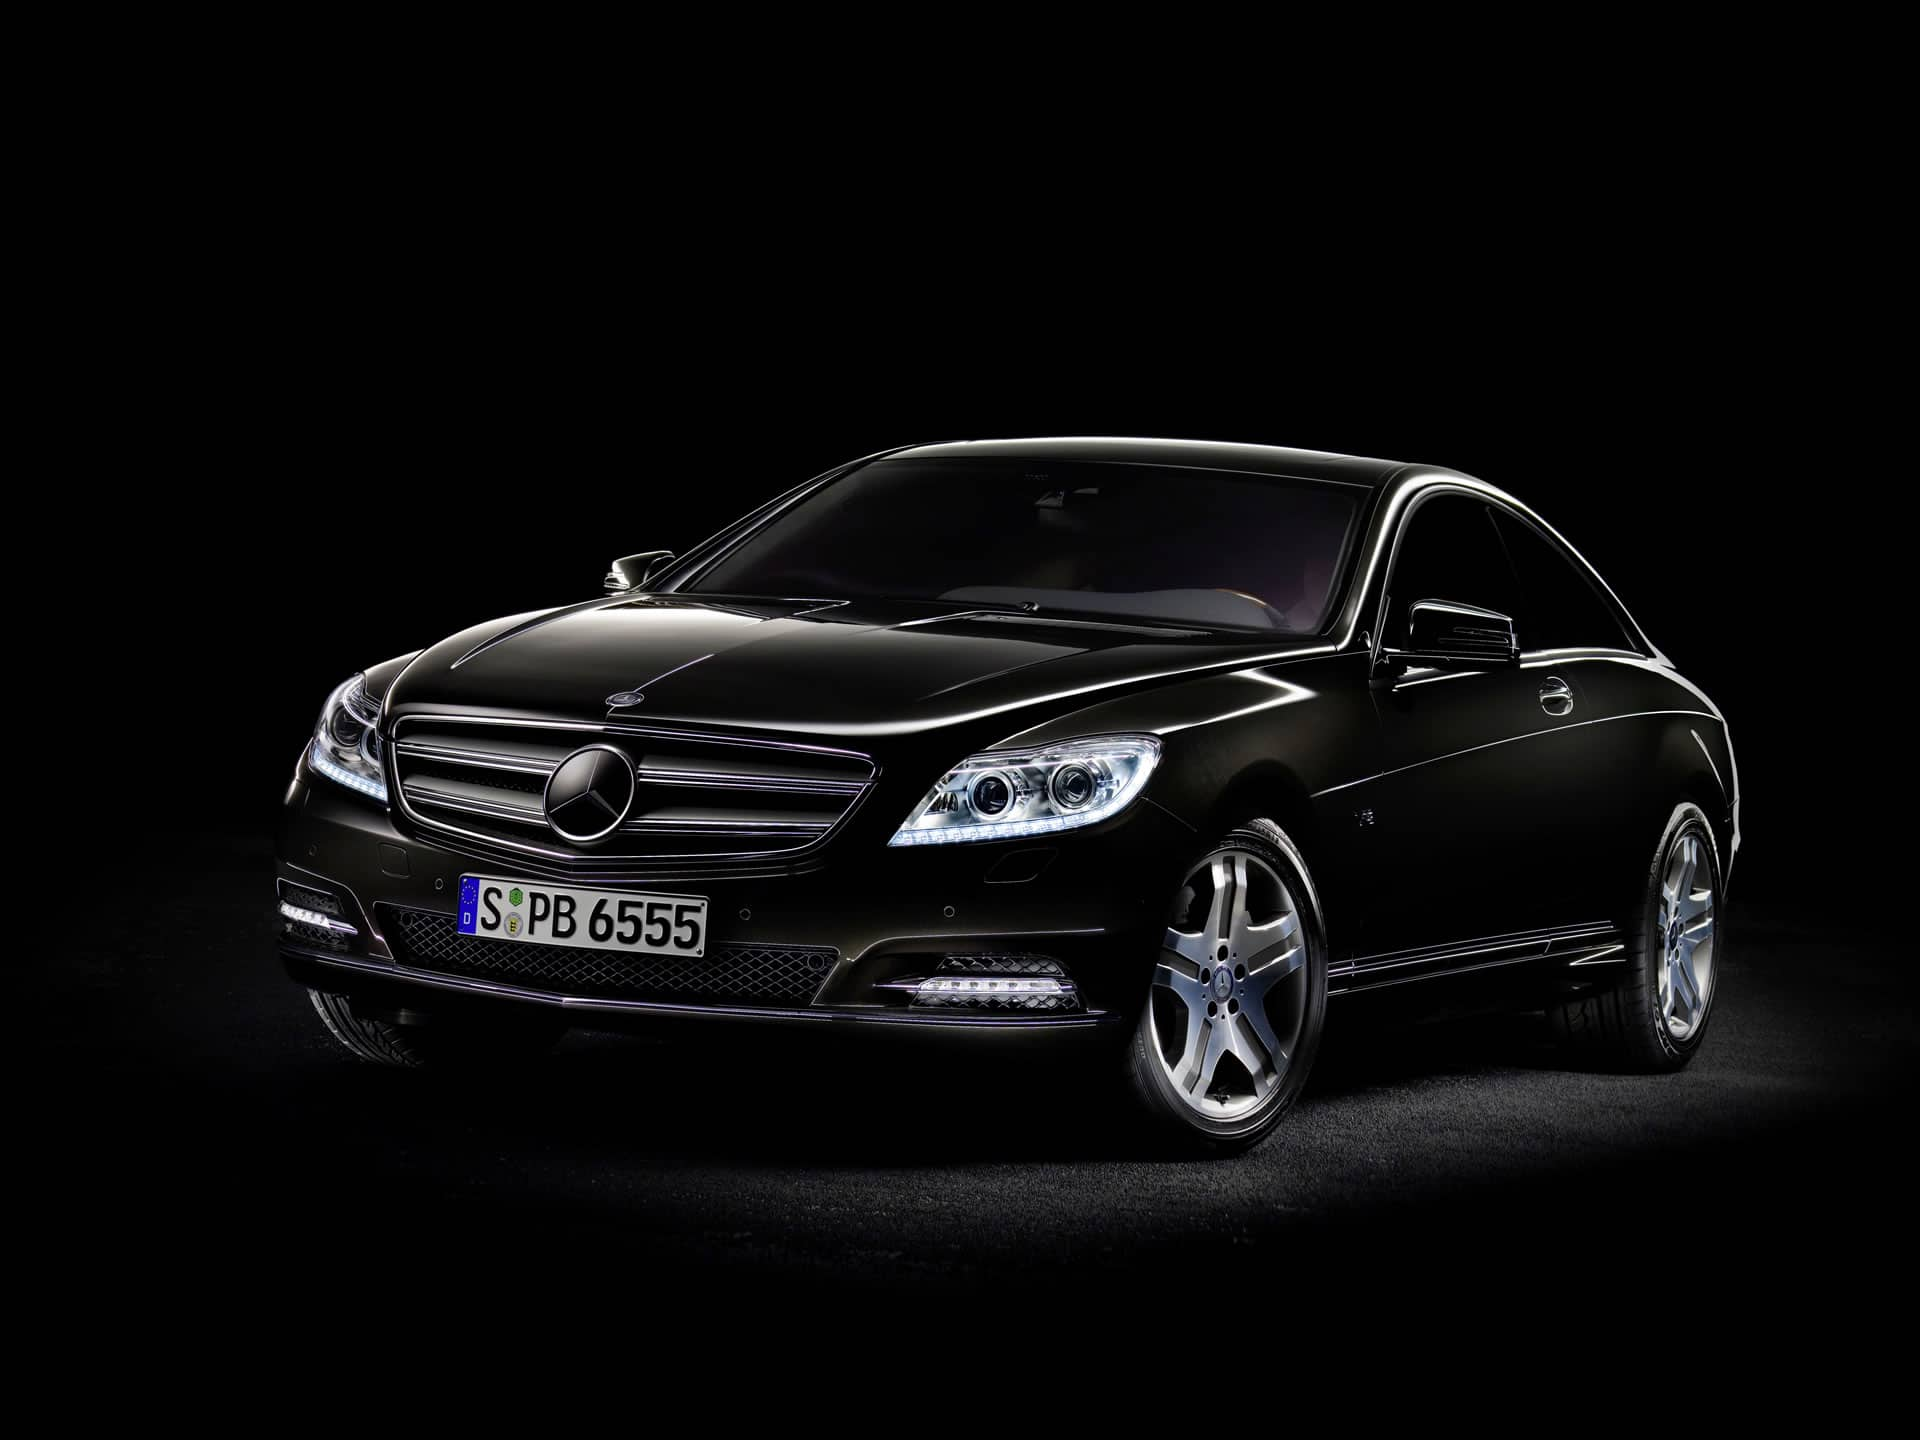 Neues modell der mercedes benz cl klasse for Mercedes benz in